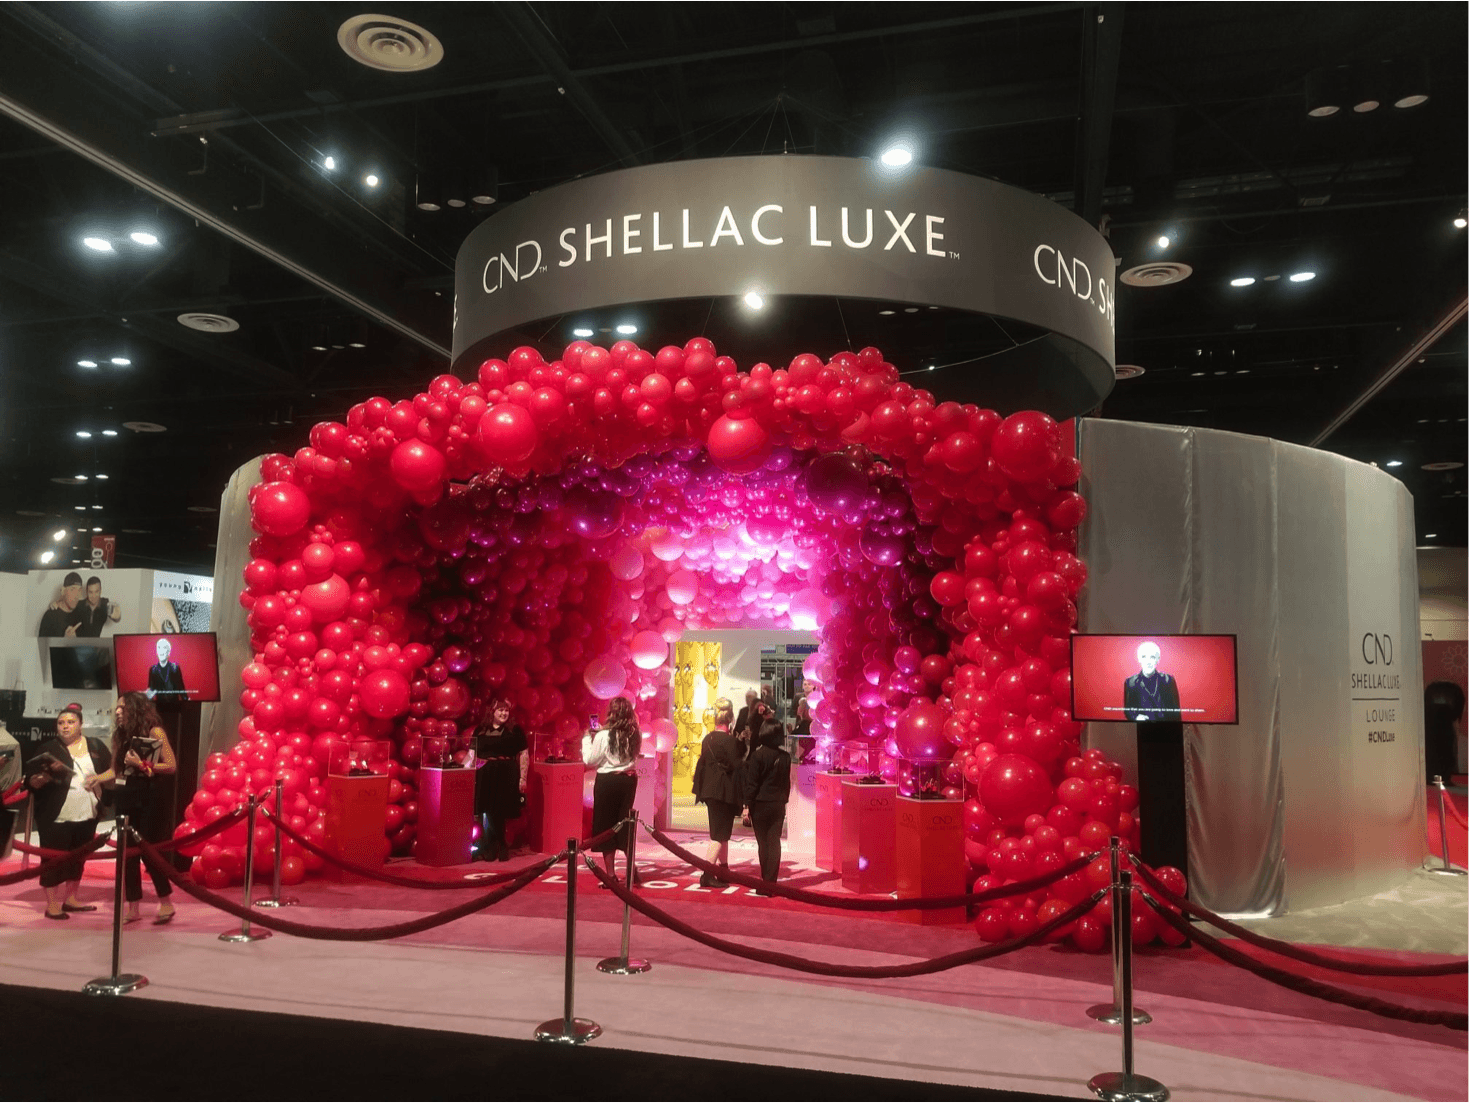 Event Activation Experience for CND – a Division of Revlon